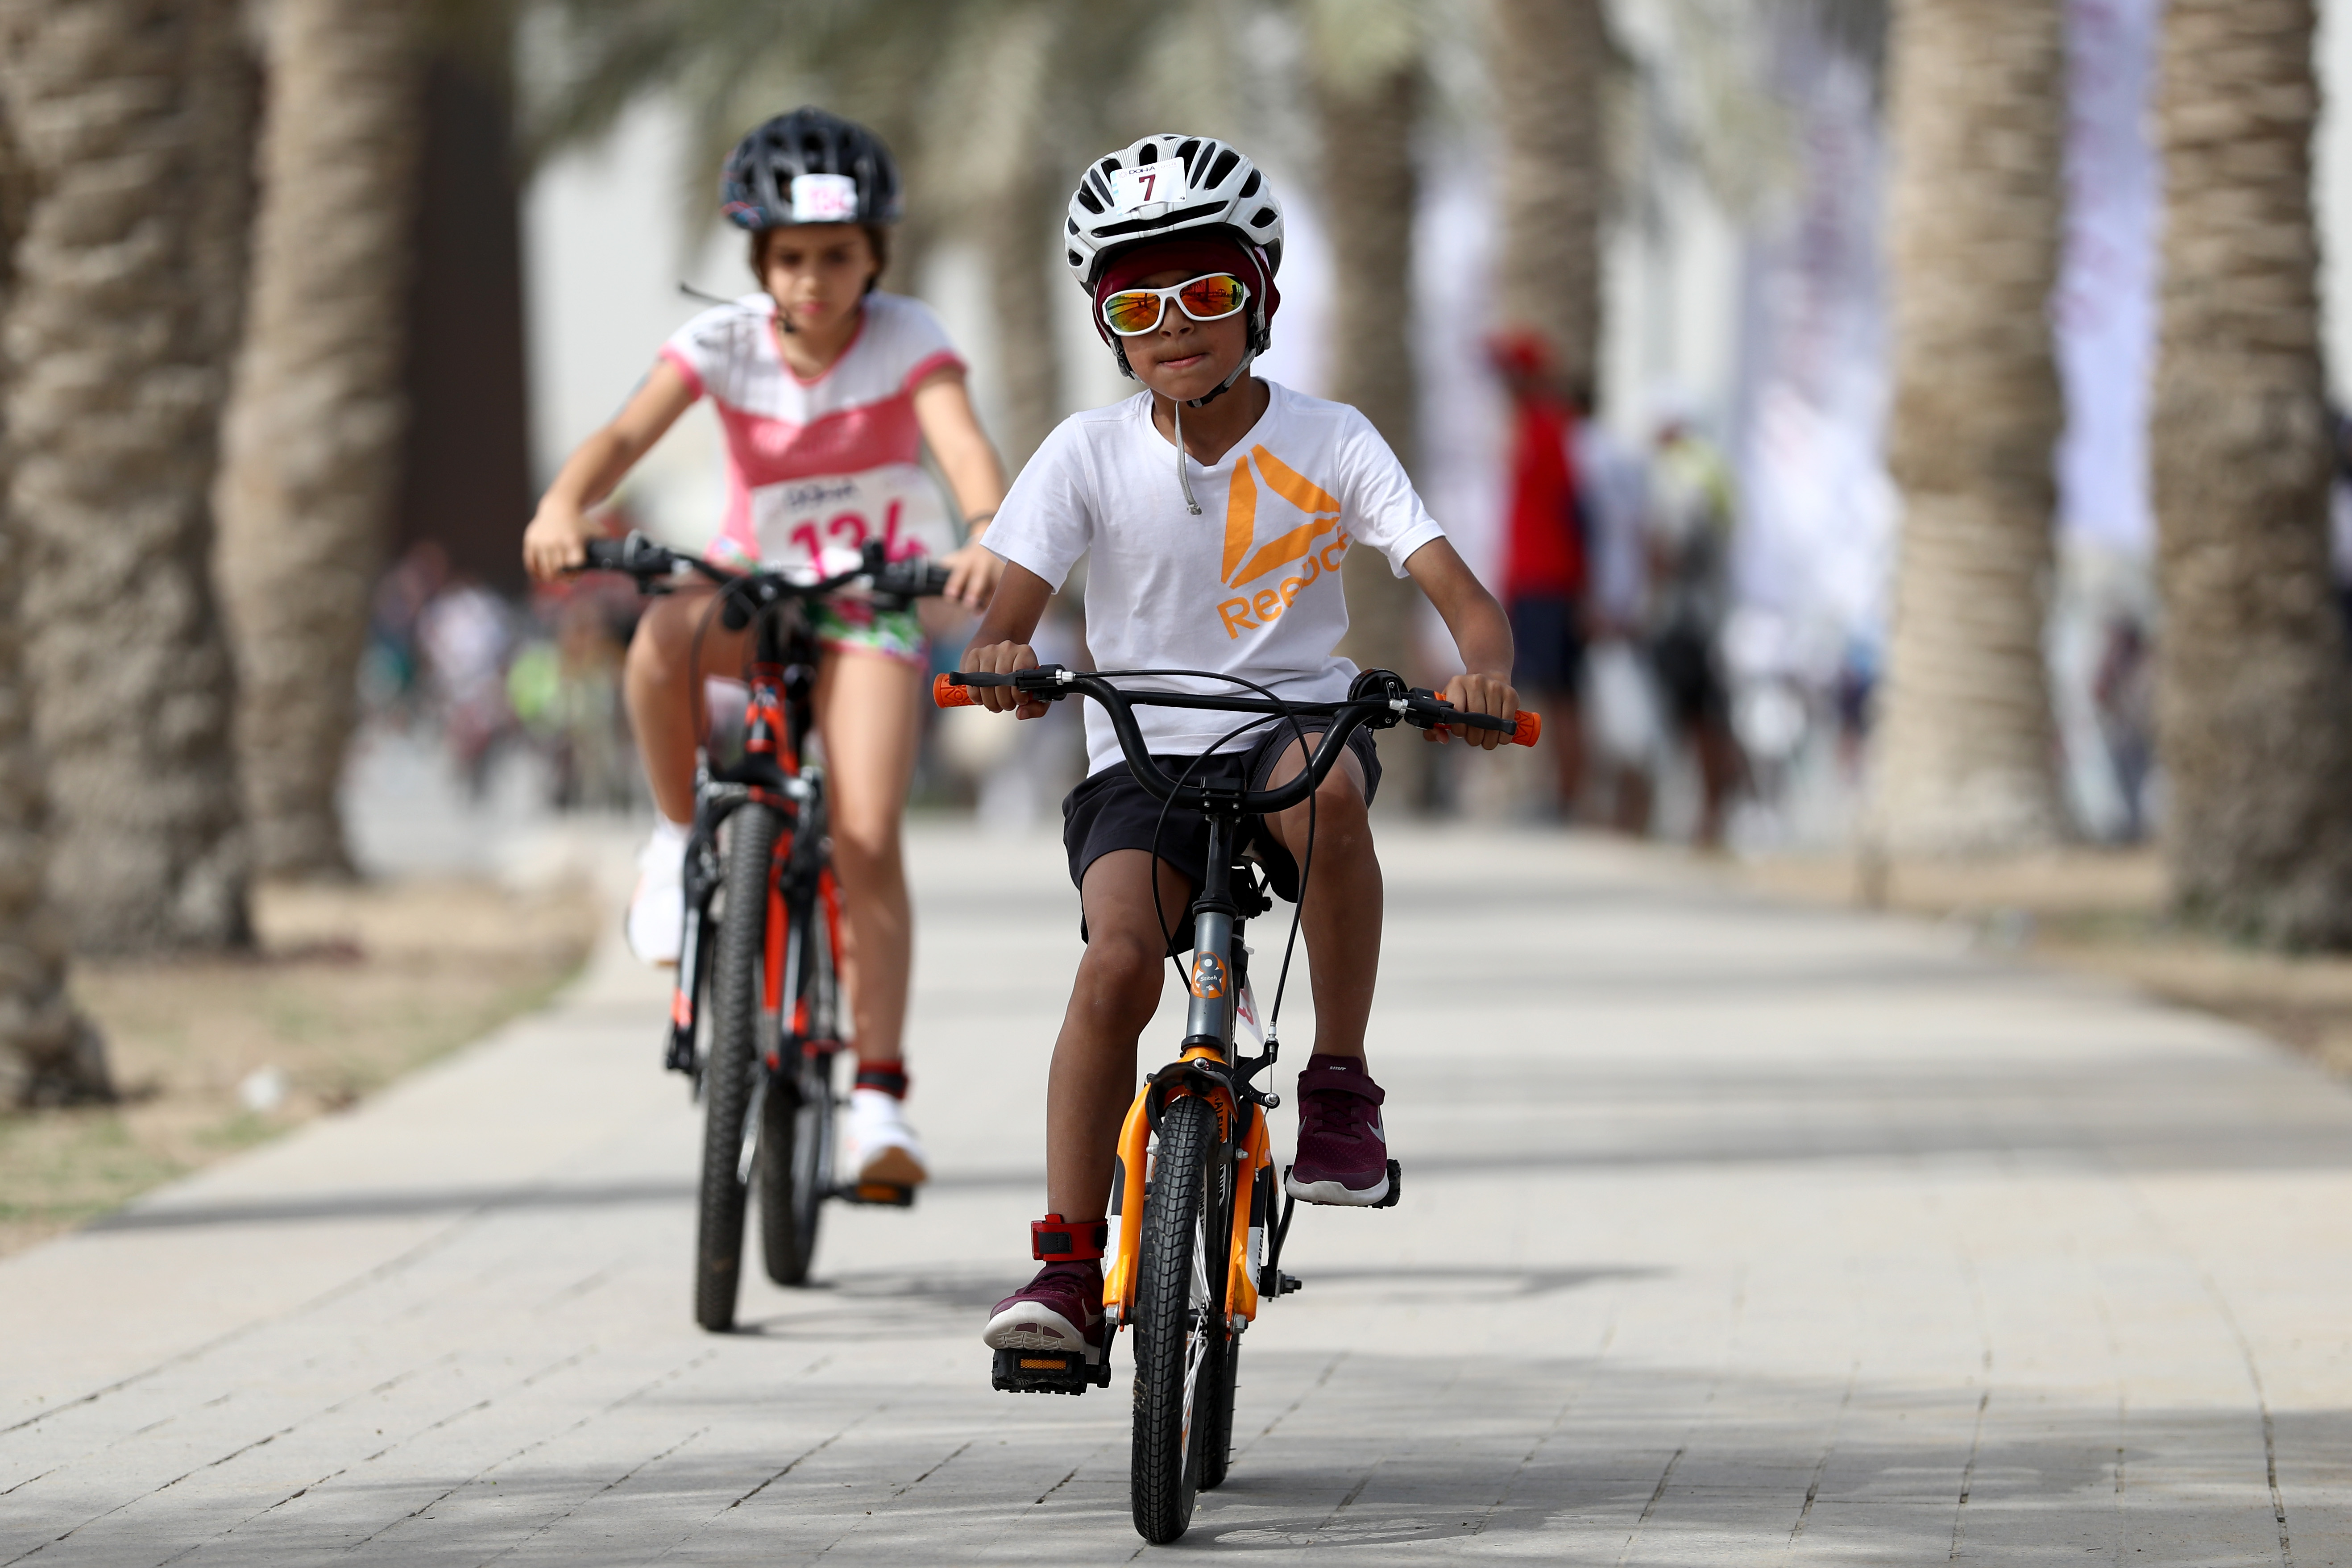 DOHA, QATAR - MARCH 16: during the Doha Triathlon 2018 on March 16, 2018 in Doha, Qatar.Set along Doha's spectacular coast line, the course offered competitors stunning views of architecture and art including statues by Richard Serra and the I. M.Pei designed Museum of Islamic Art. (Photo by Francois Nel/Getty Images for Qatar Tourism Authority)